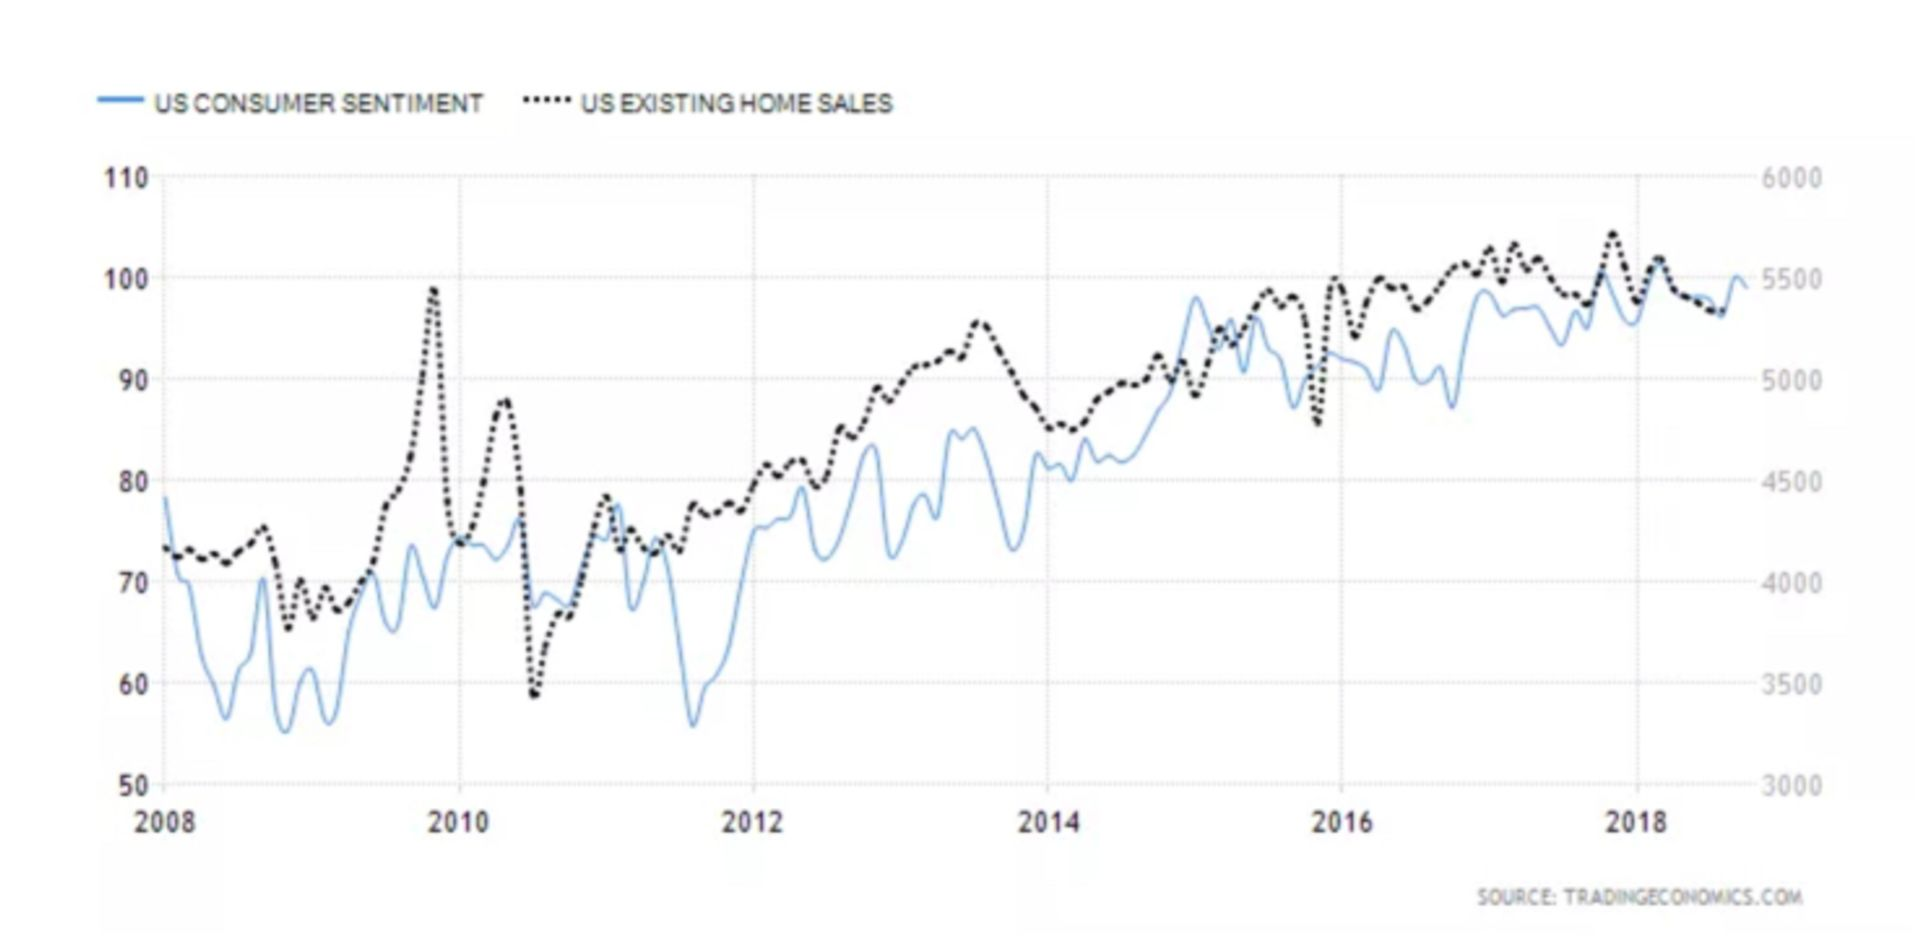 Home Sales Historically Track With Consumer Confidence (Mostly)